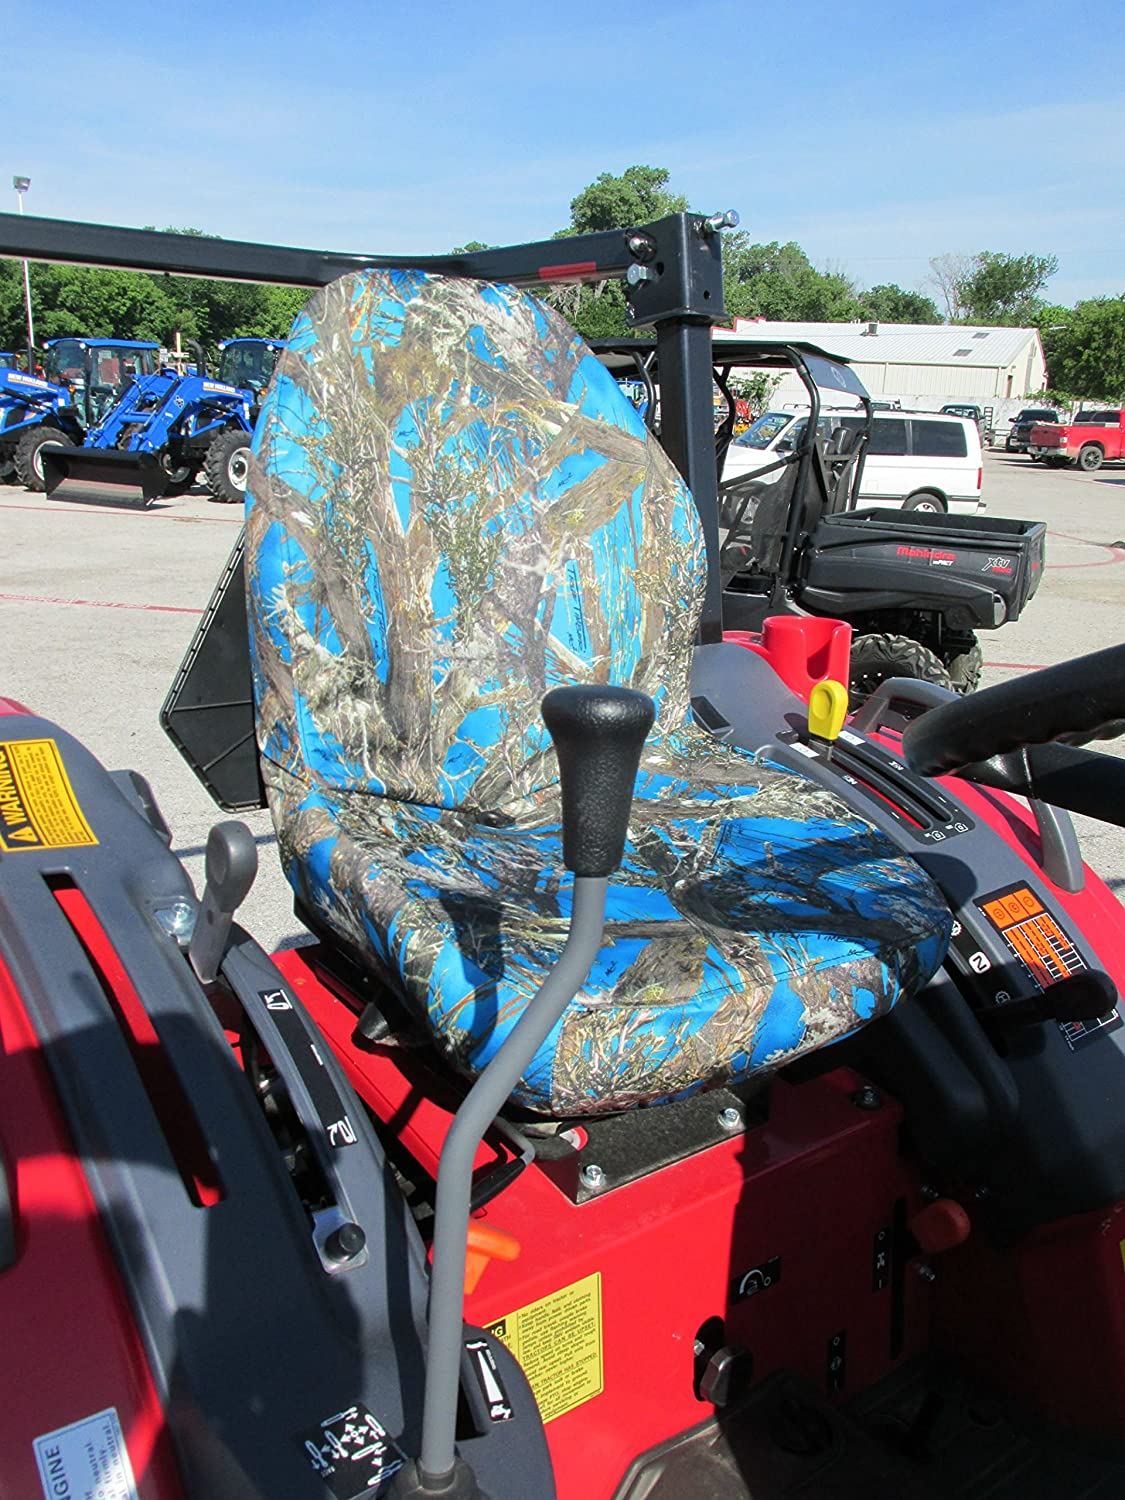 Durafit Seat Covers KU20 Blue Mahindra Seat Covers for tractor 1526 4WD HST AND SHUTTLE ONLY